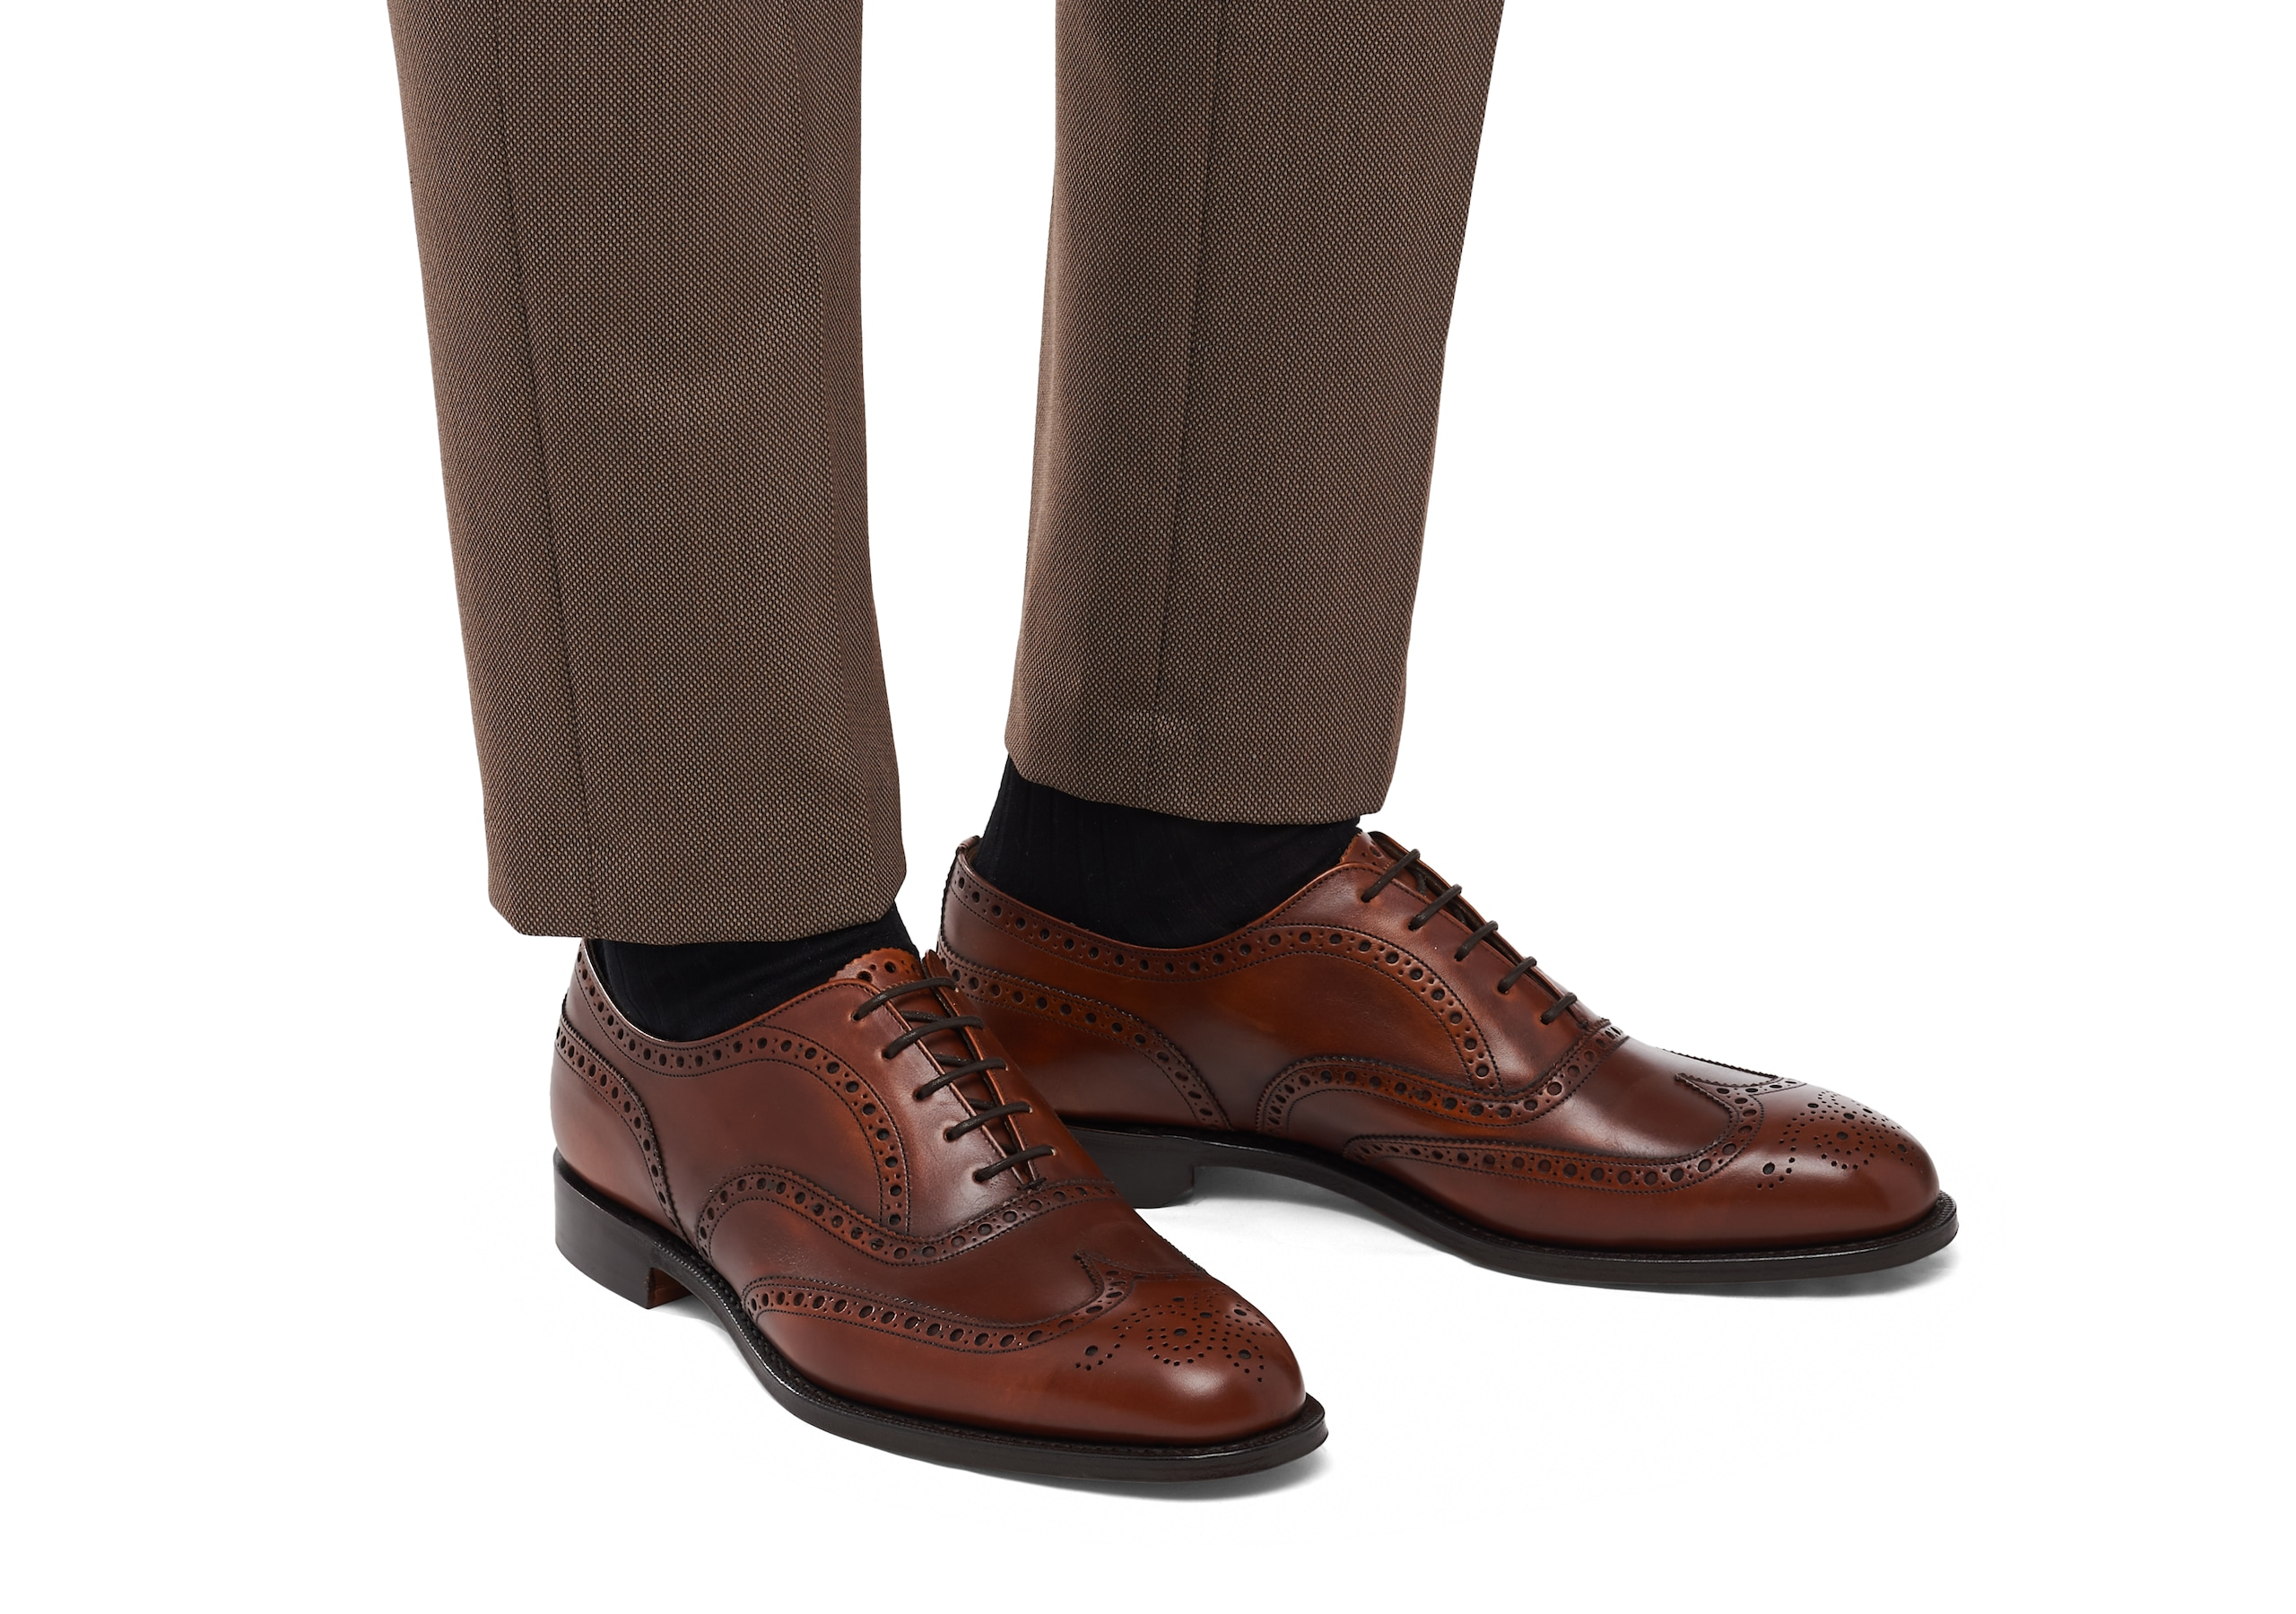 Chetwynd^ Church's Superior Calf Leather Oxford Brogue Brown